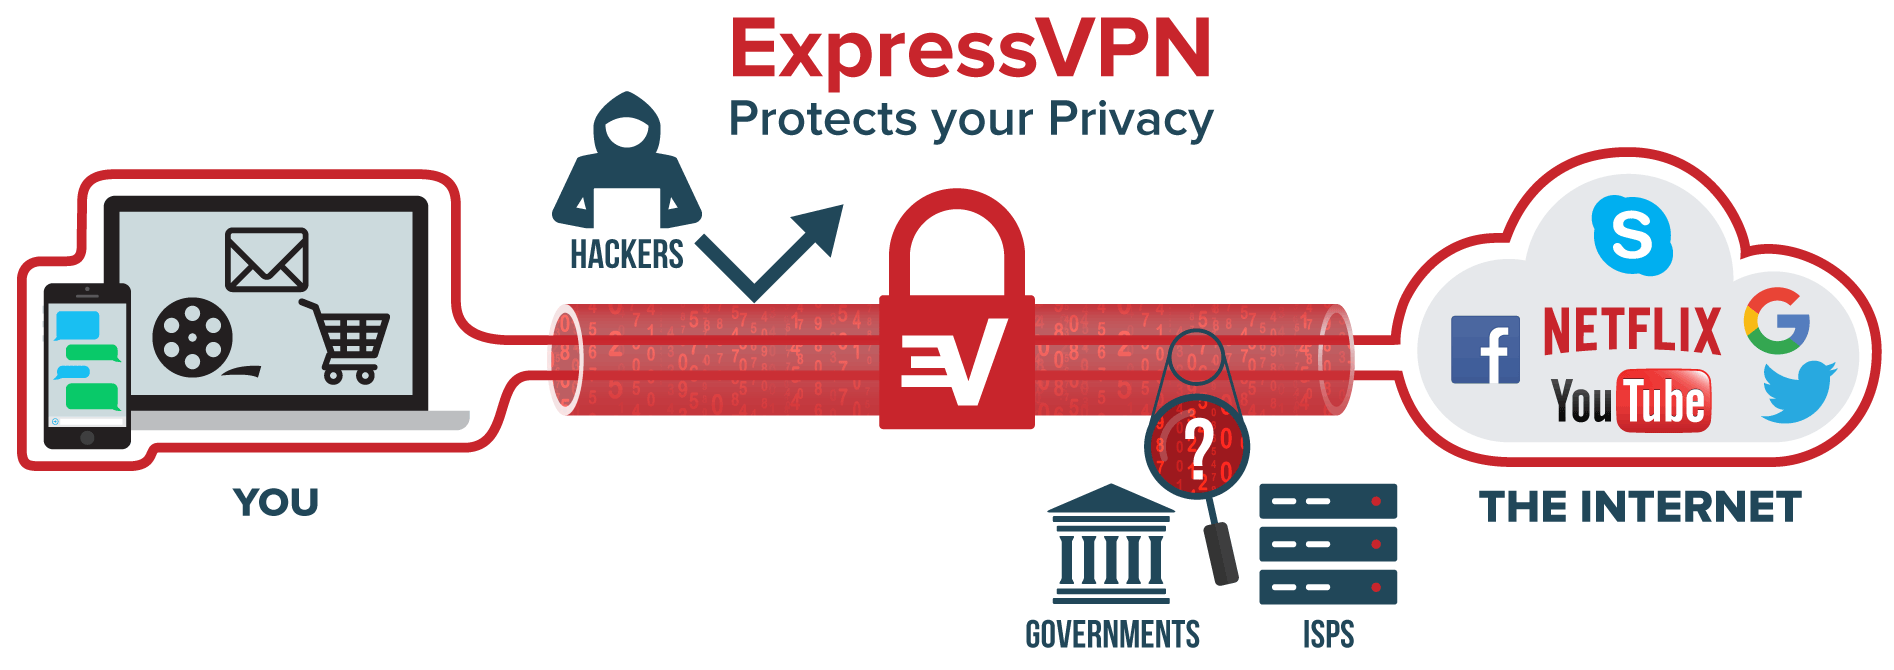 expressvpn vs Ipvanish vpn